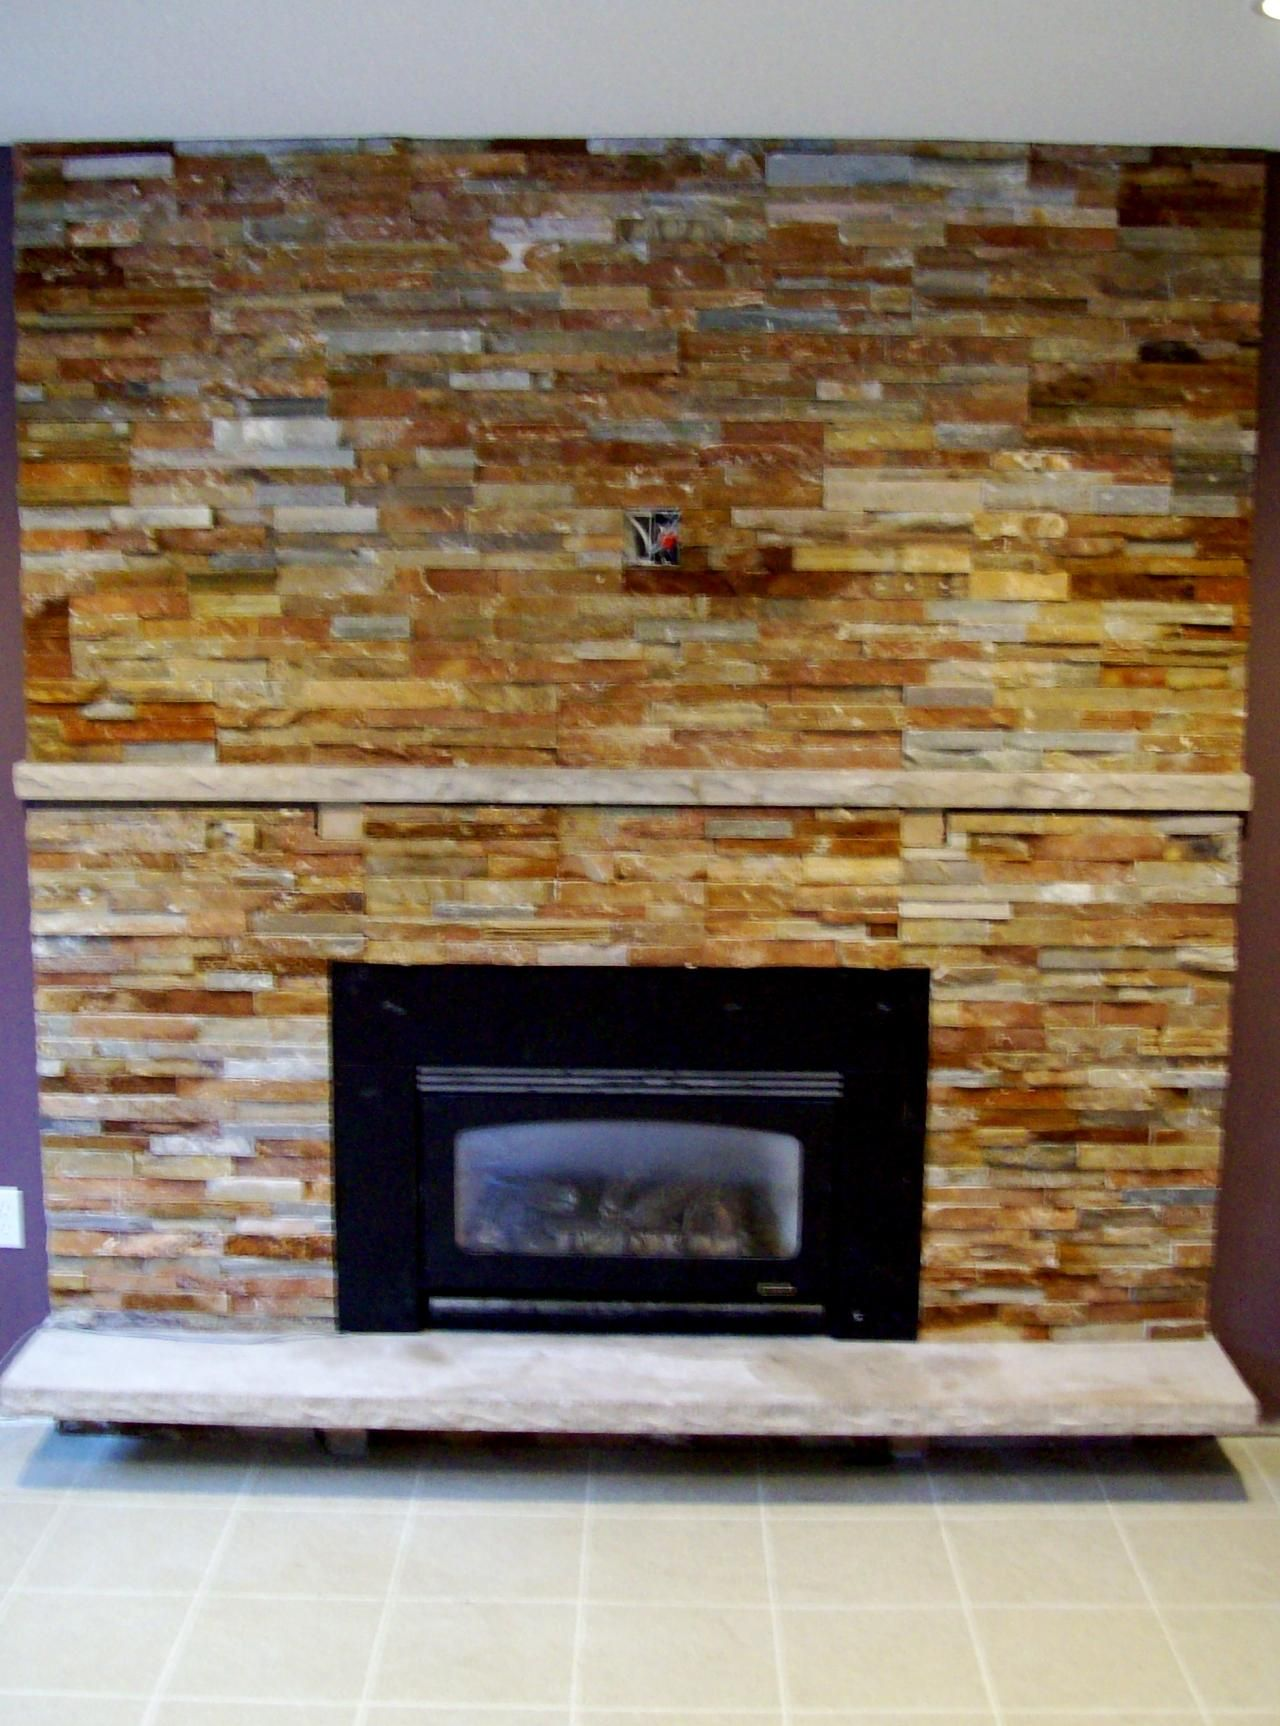 Amazing Stacked Stone Fireplace With Small Black Electric Gas Fireplace  Without Mantel As Well As White White Marble As Based Floors Front Fireplace  ...